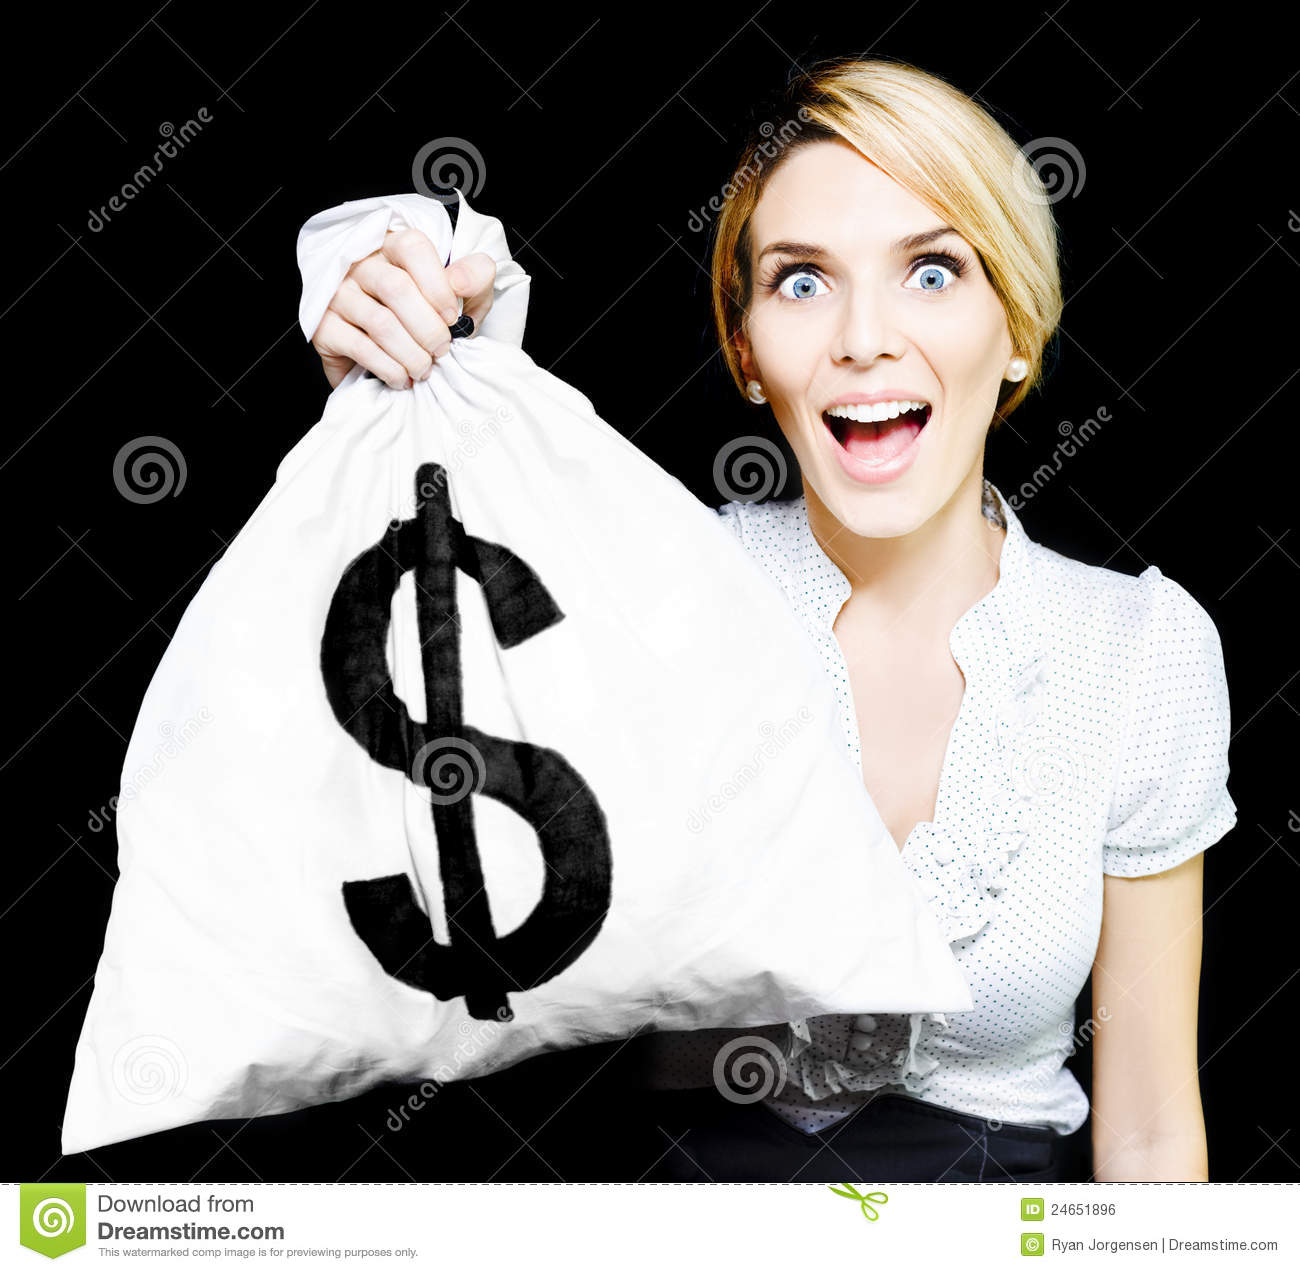 Free money to start a business woman